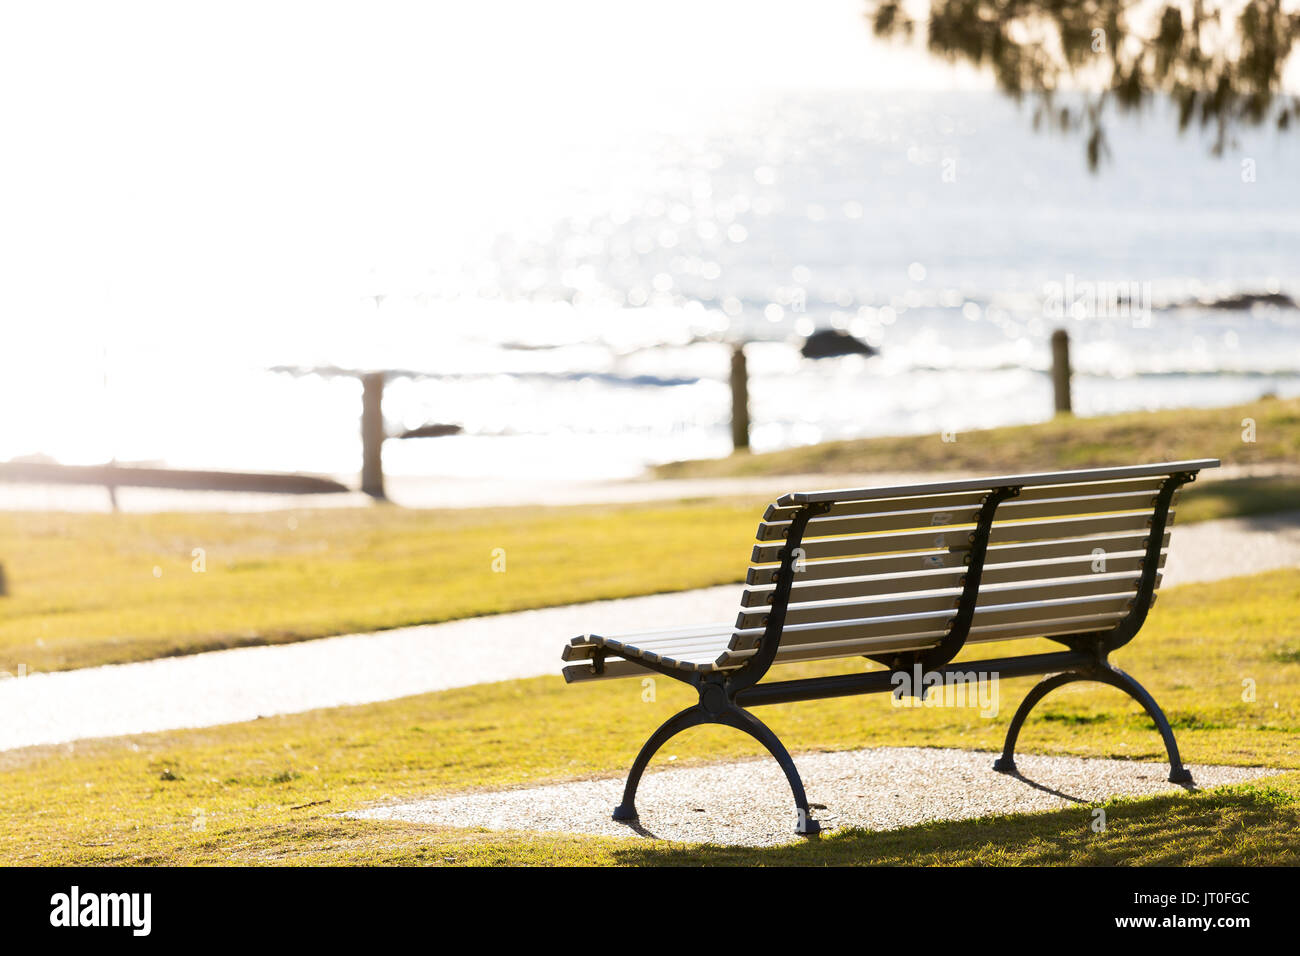 An empty park seat by the sea and beach, backlit by vibrant, bright morning sun light with no people in sight. - Stock Image